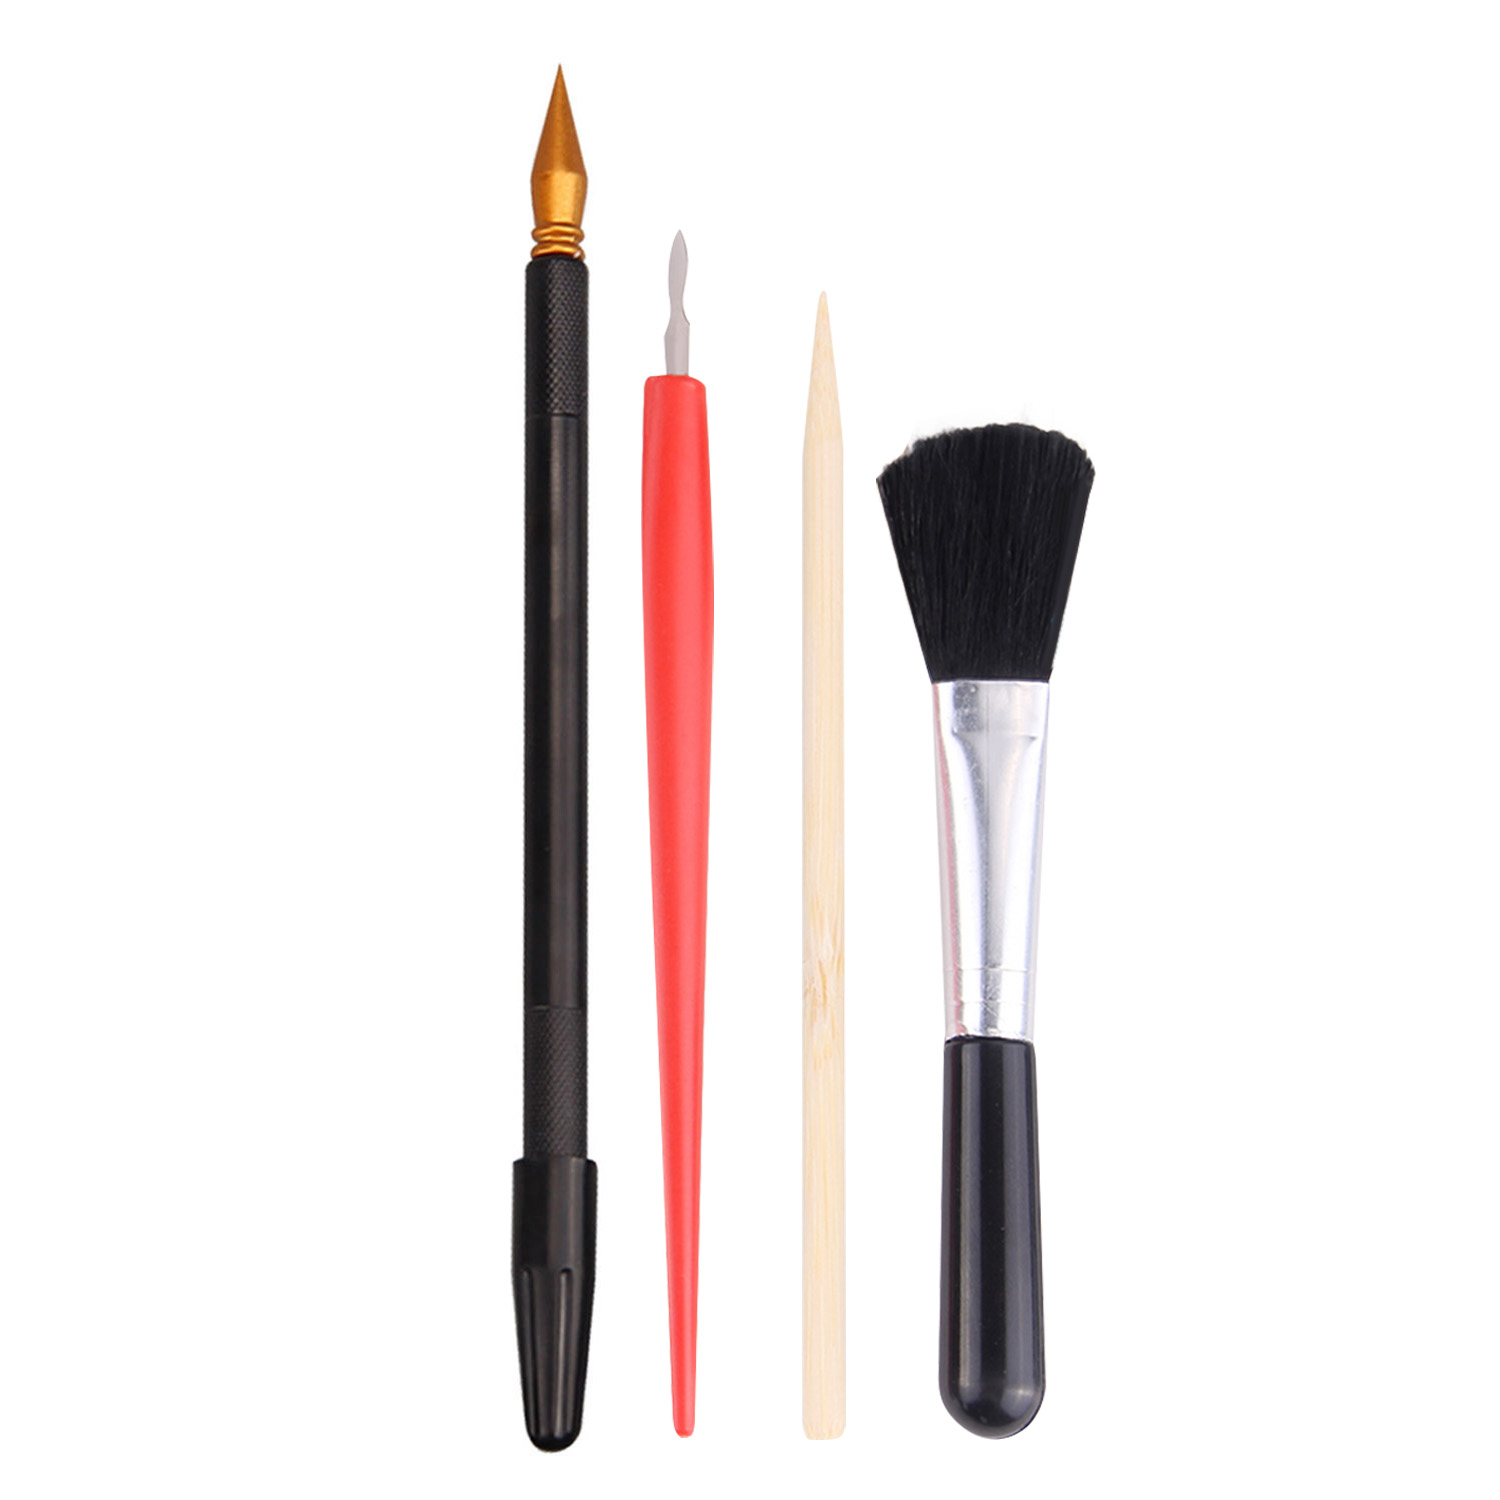 4Pcs Painting Drawing Scratch Set With Stick Scraper Pen Black Brush For Scratch Sketch Papers Boards Tools DIY Gift